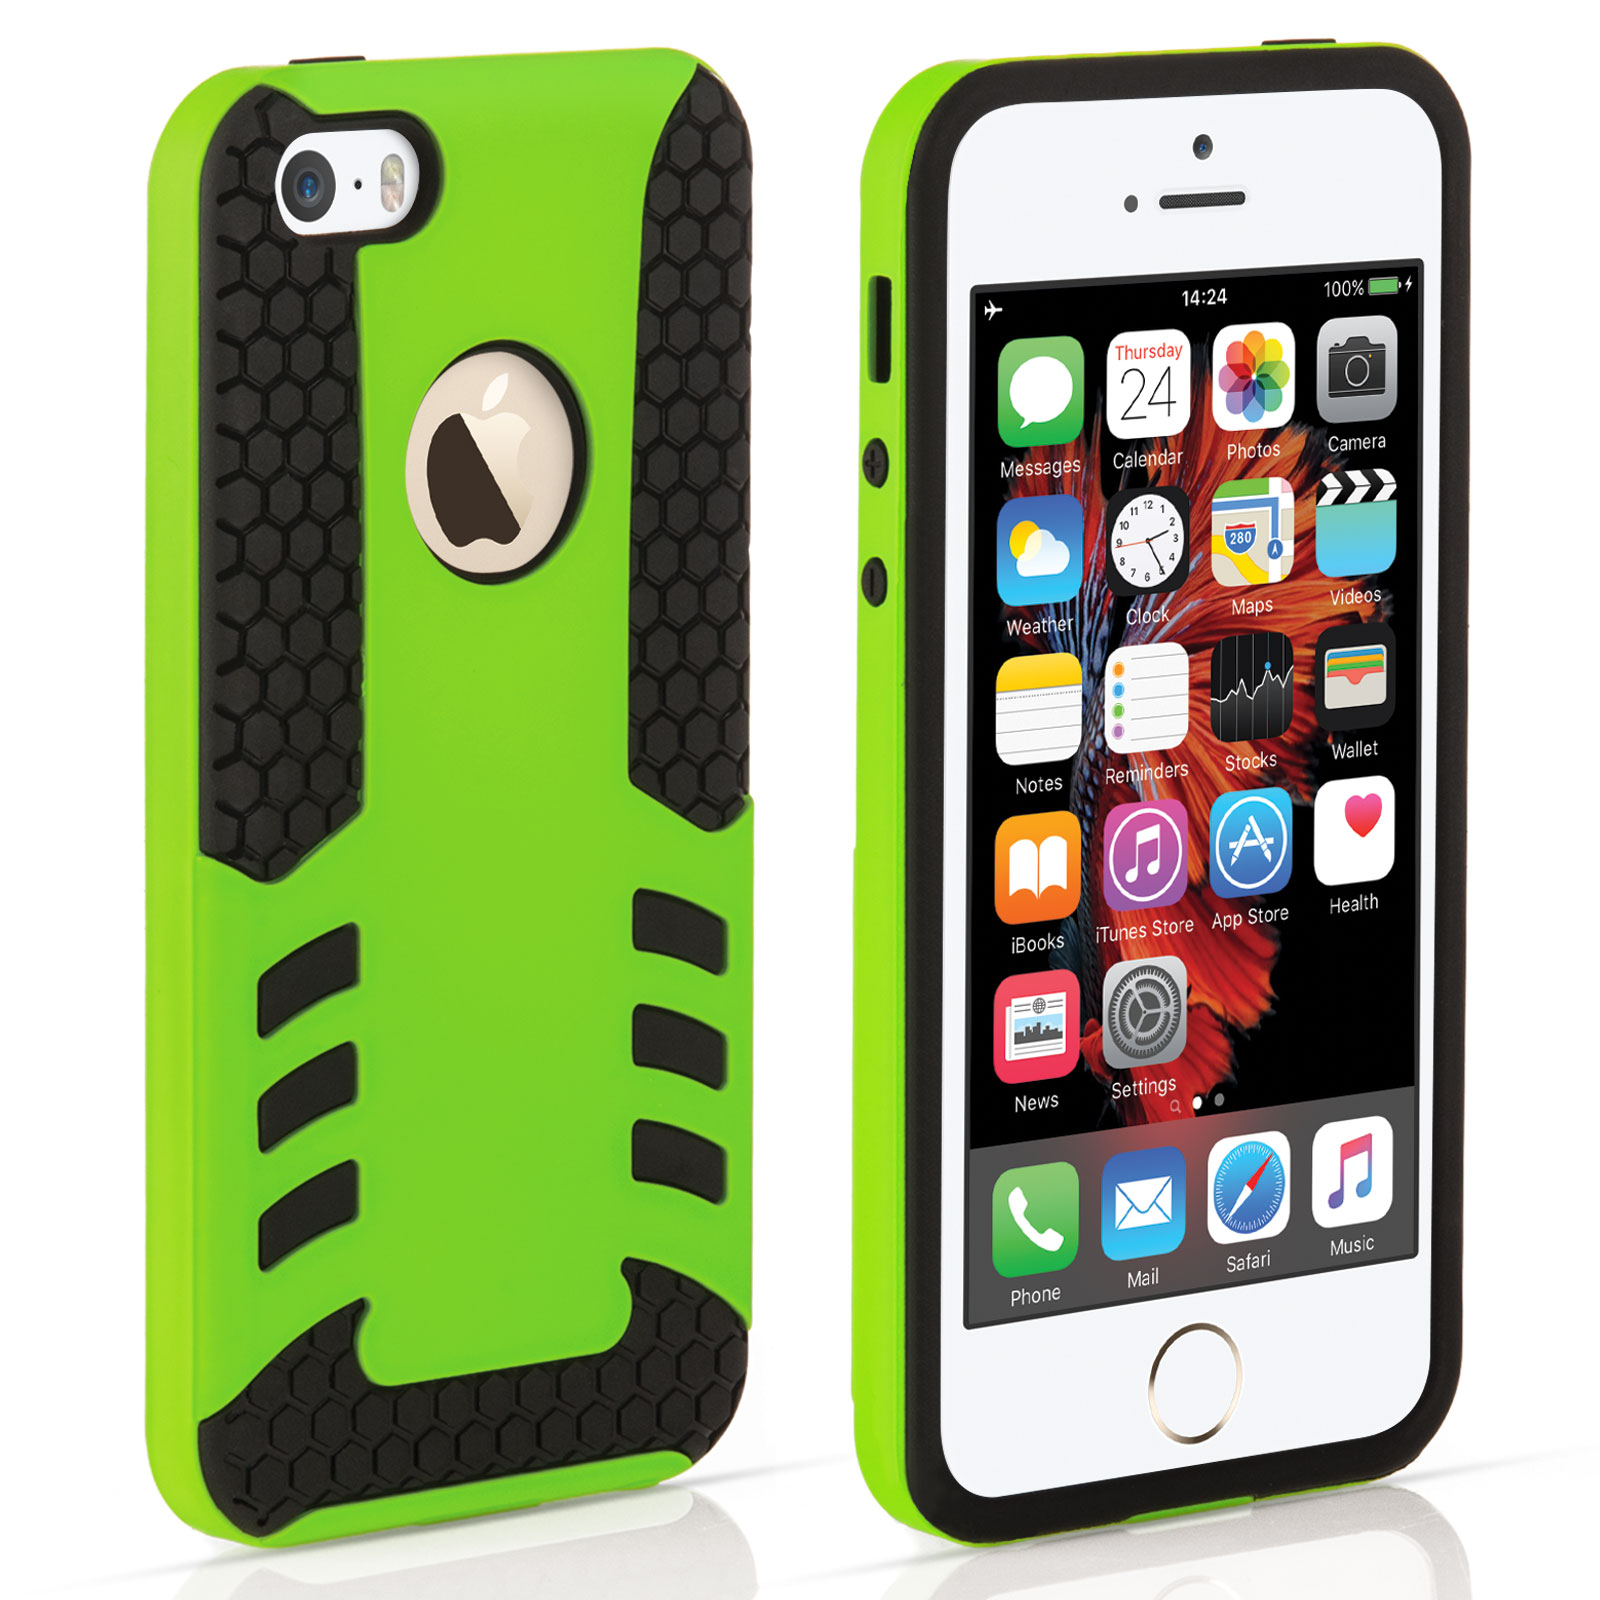 reputable site 04deb 1e174 iPhone 5 And 5s / SE Border Combo Case - Green